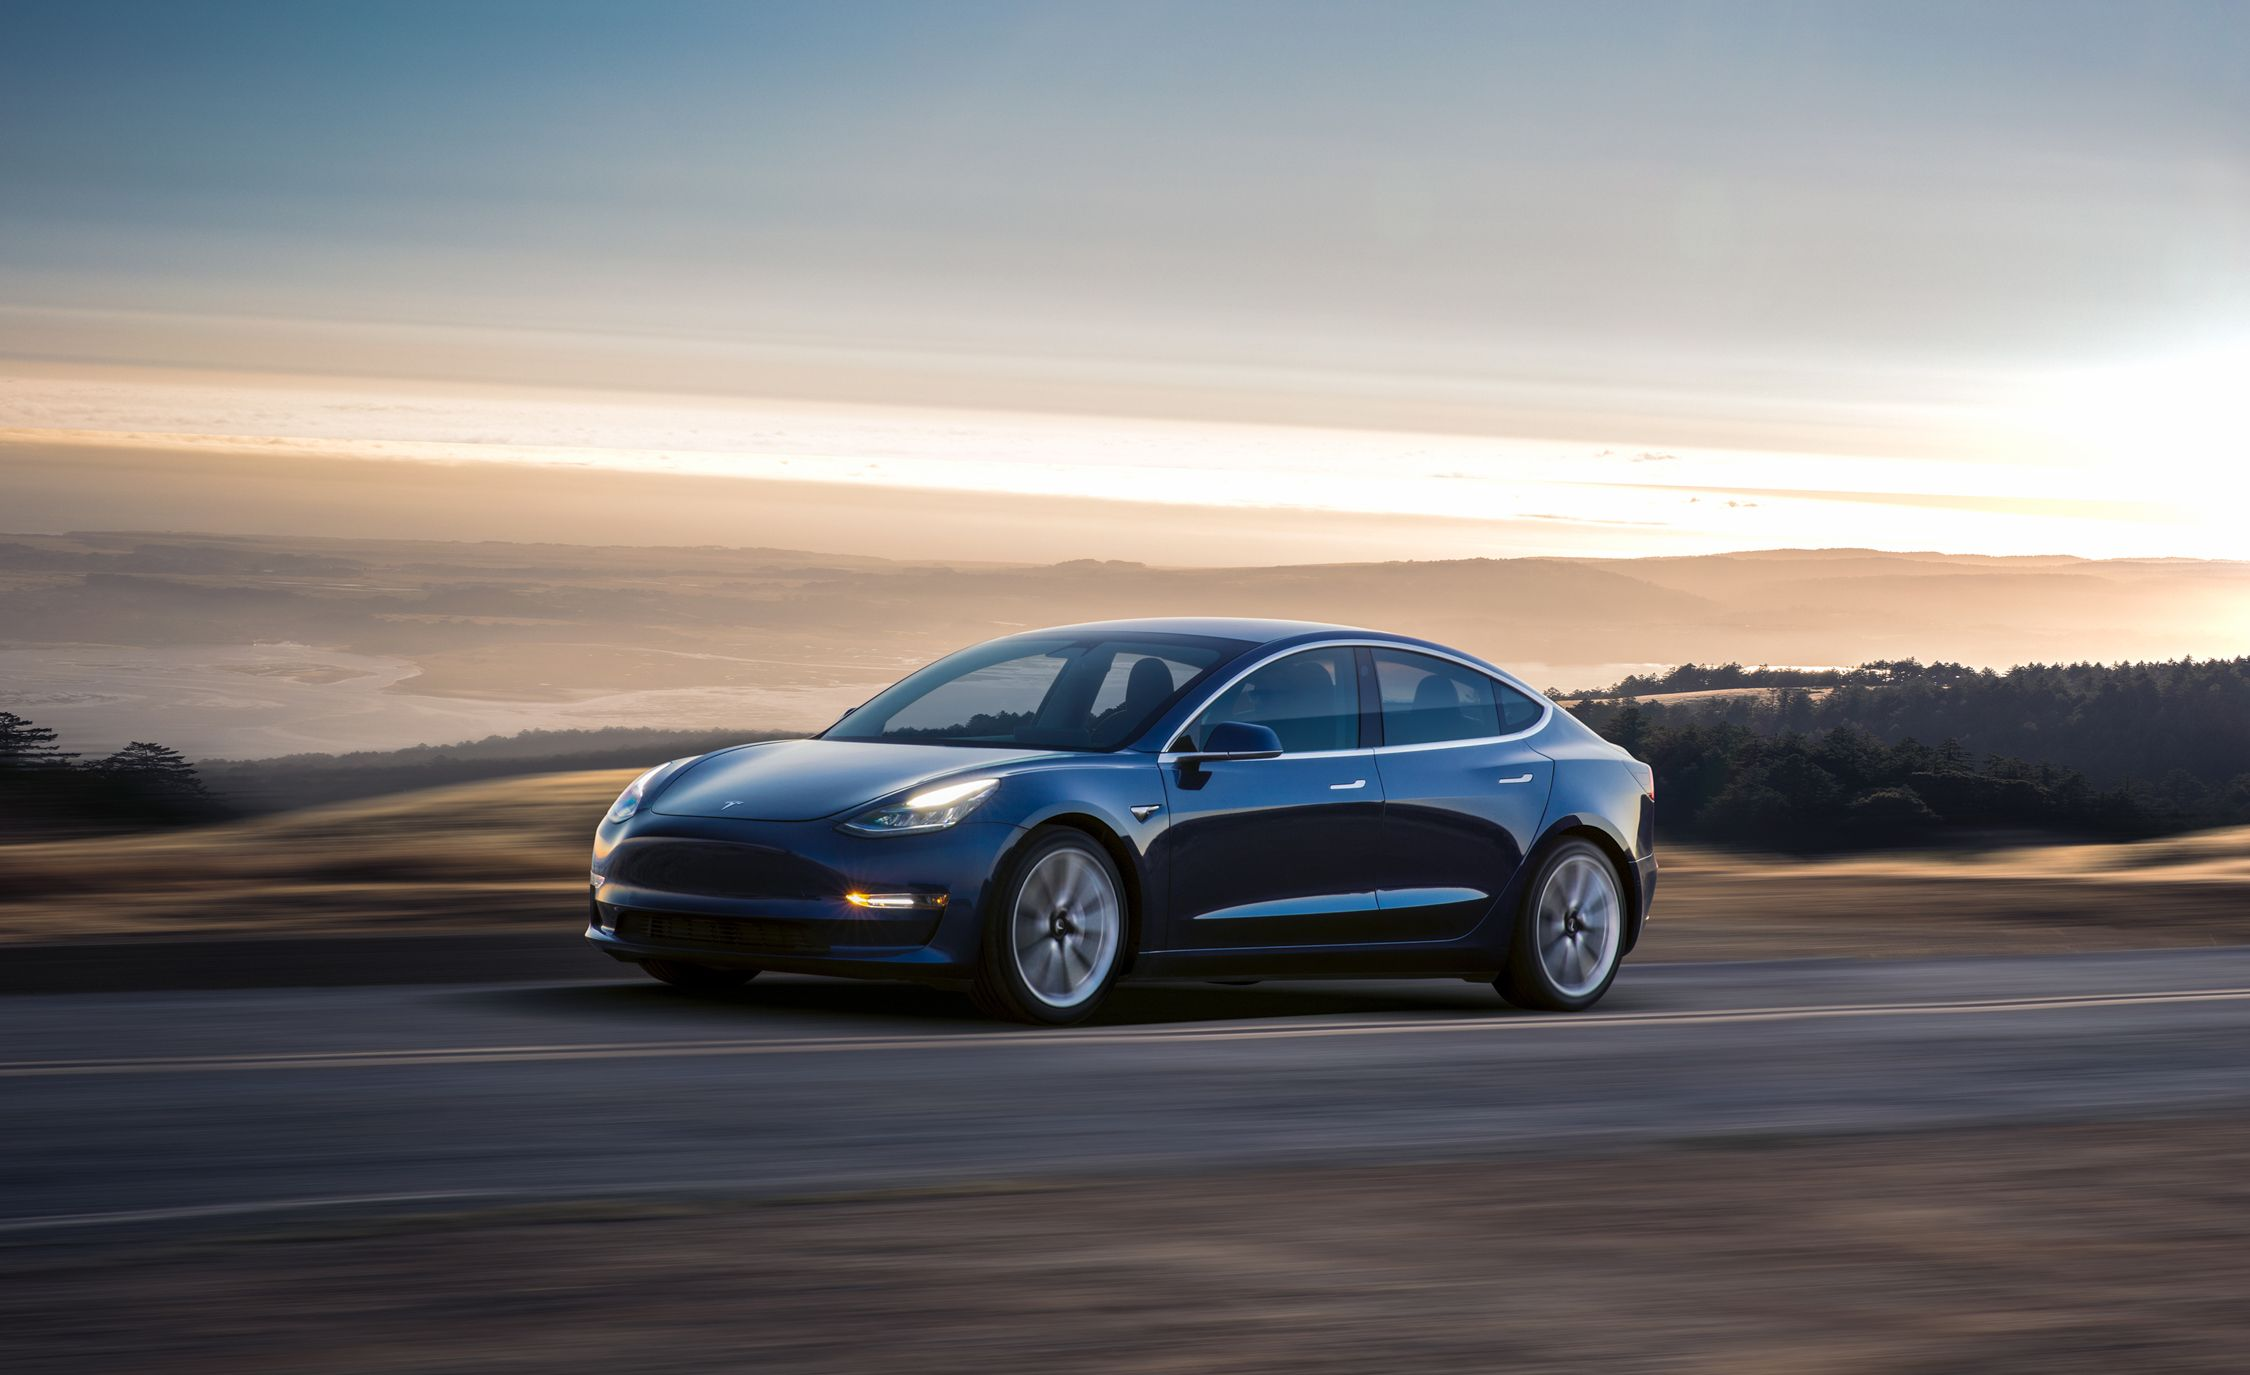 Stand and Deliver: Elon Musk Hands Off First Tesla Model 3 Production Cars